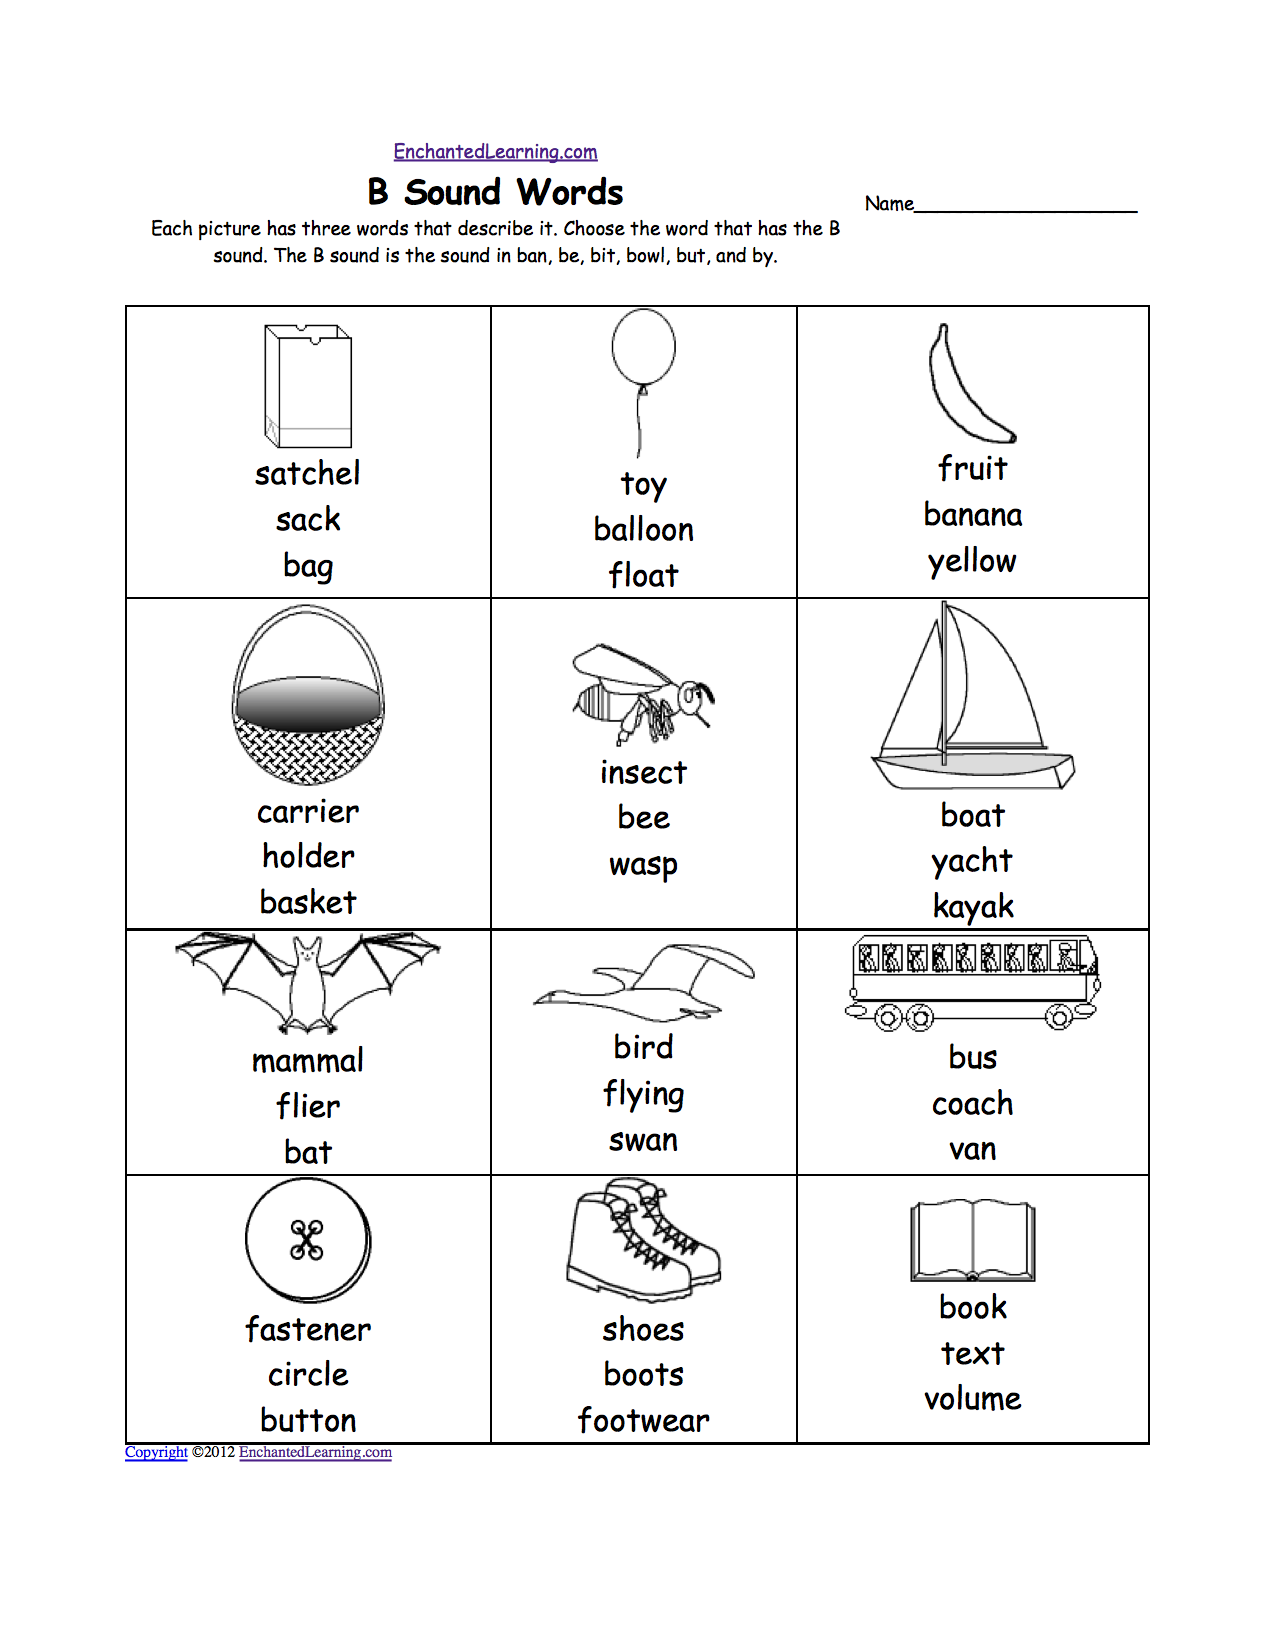 Weirdmailus  Ravishing Phonics Worksheets Multiple Choice Worksheets To Print  With Gorgeous Quotbquot Sound Phonics Worksheet Multiple Choice Each Picture Has Three Words That Describe It Choose The Word That Has A Quotbquot Sound The Quotbquot Sound Is The Sound  With Amazing Blank Food Pyramid Worksheet Also Counting To  Worksheets For Kindergarten In Addition Plural Possessive Noun Worksheets And Fanboys Grammar Worksheet As Well As Reading Protractor Worksheet Additionally Bill Nye The Science Guy Video Worksheets From Enchantedlearningcom With Weirdmailus  Gorgeous Phonics Worksheets Multiple Choice Worksheets To Print  With Amazing Quotbquot Sound Phonics Worksheet Multiple Choice Each Picture Has Three Words That Describe It Choose The Word That Has A Quotbquot Sound The Quotbquot Sound Is The Sound  And Ravishing Blank Food Pyramid Worksheet Also Counting To  Worksheets For Kindergarten In Addition Plural Possessive Noun Worksheets From Enchantedlearningcom